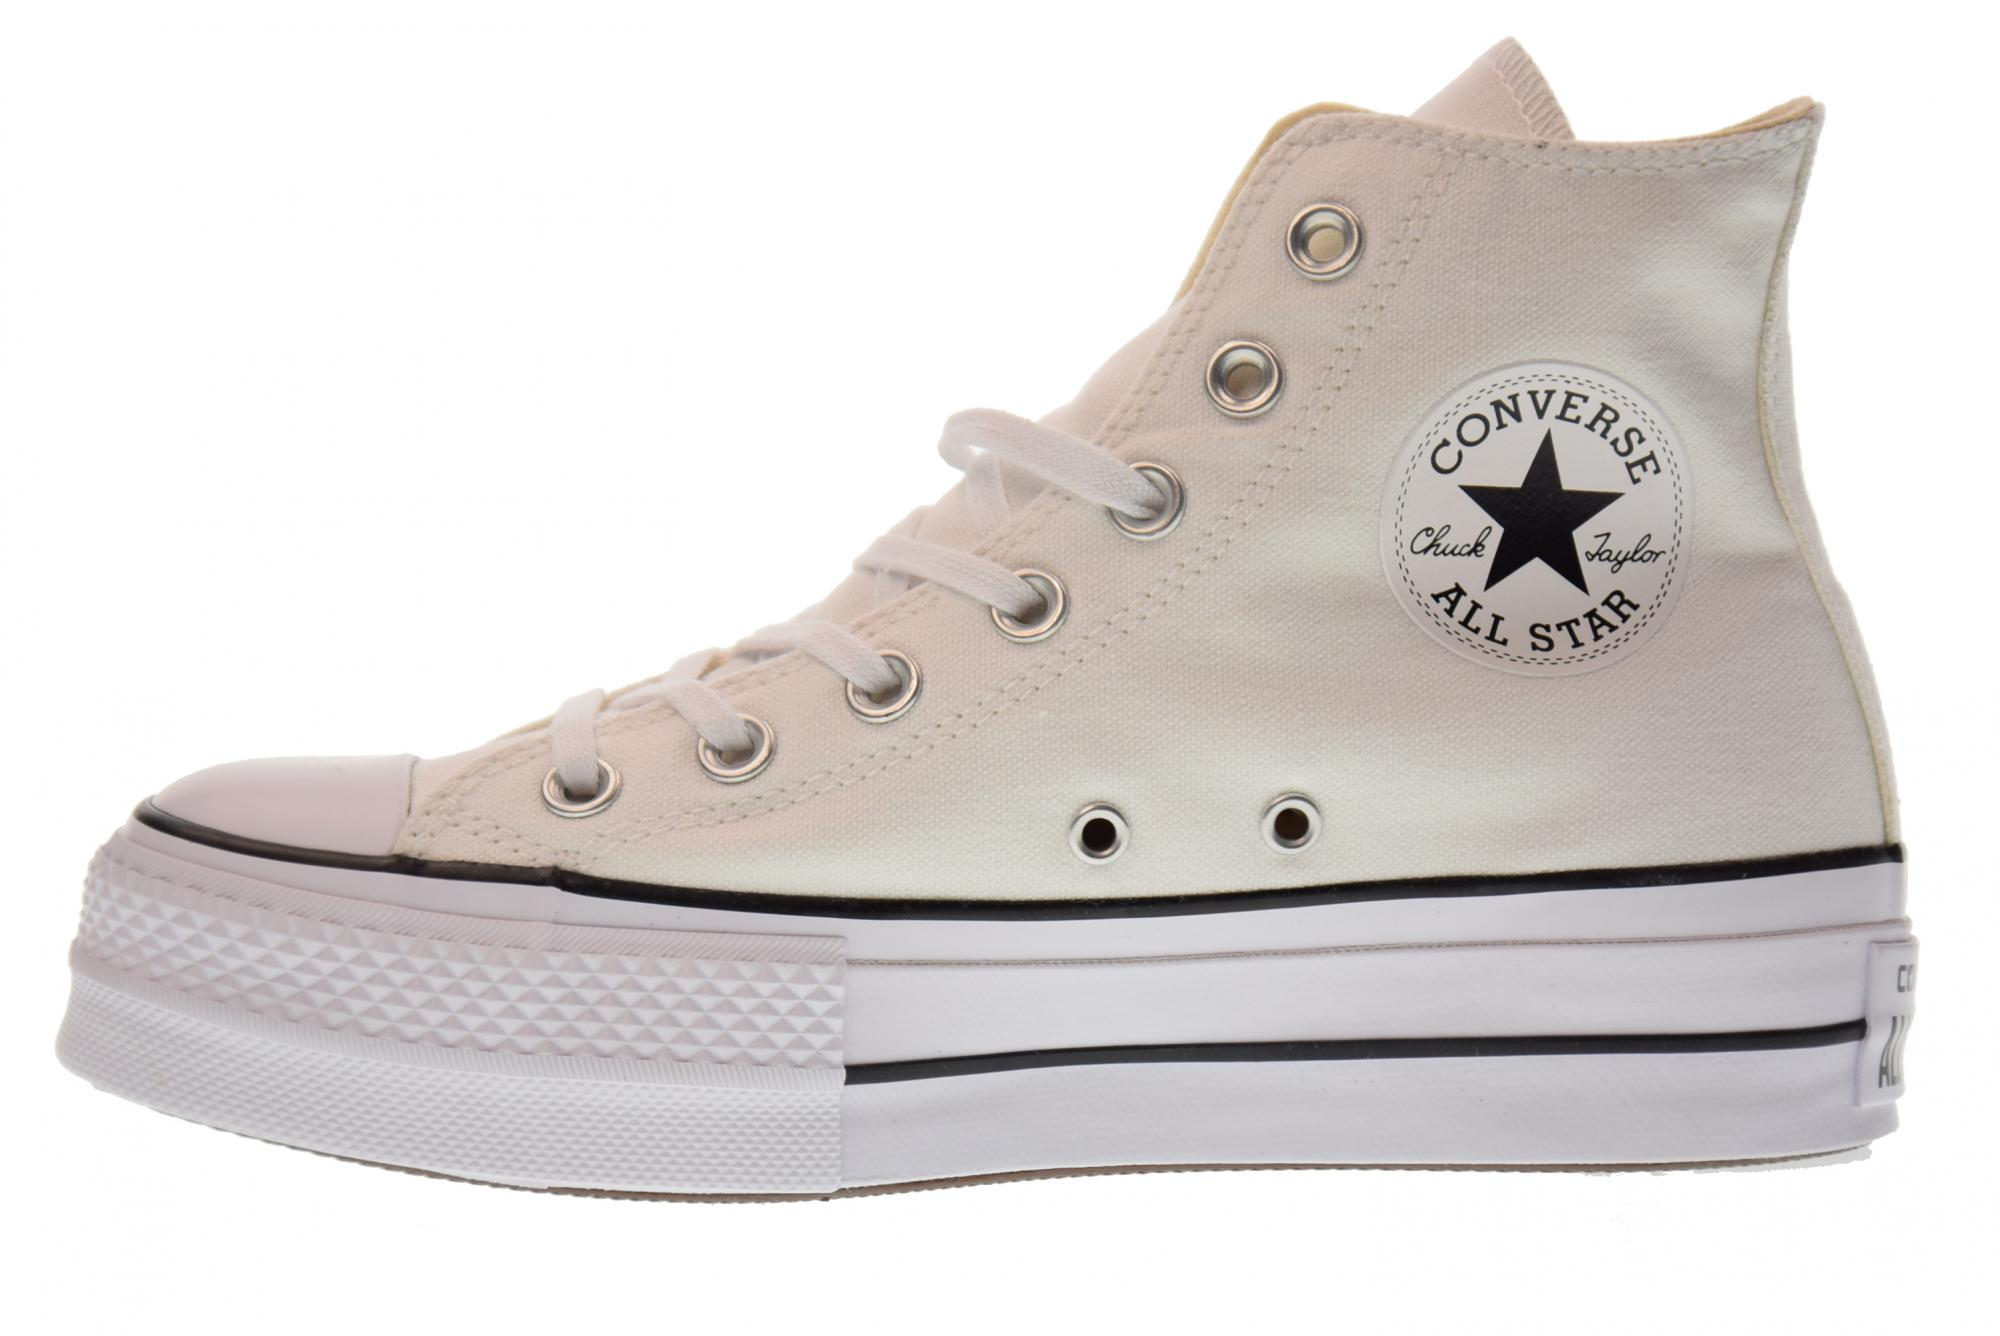 8713f570a0b Converse P19us shoes woman high sneakers with platform 560846C CTAS ...